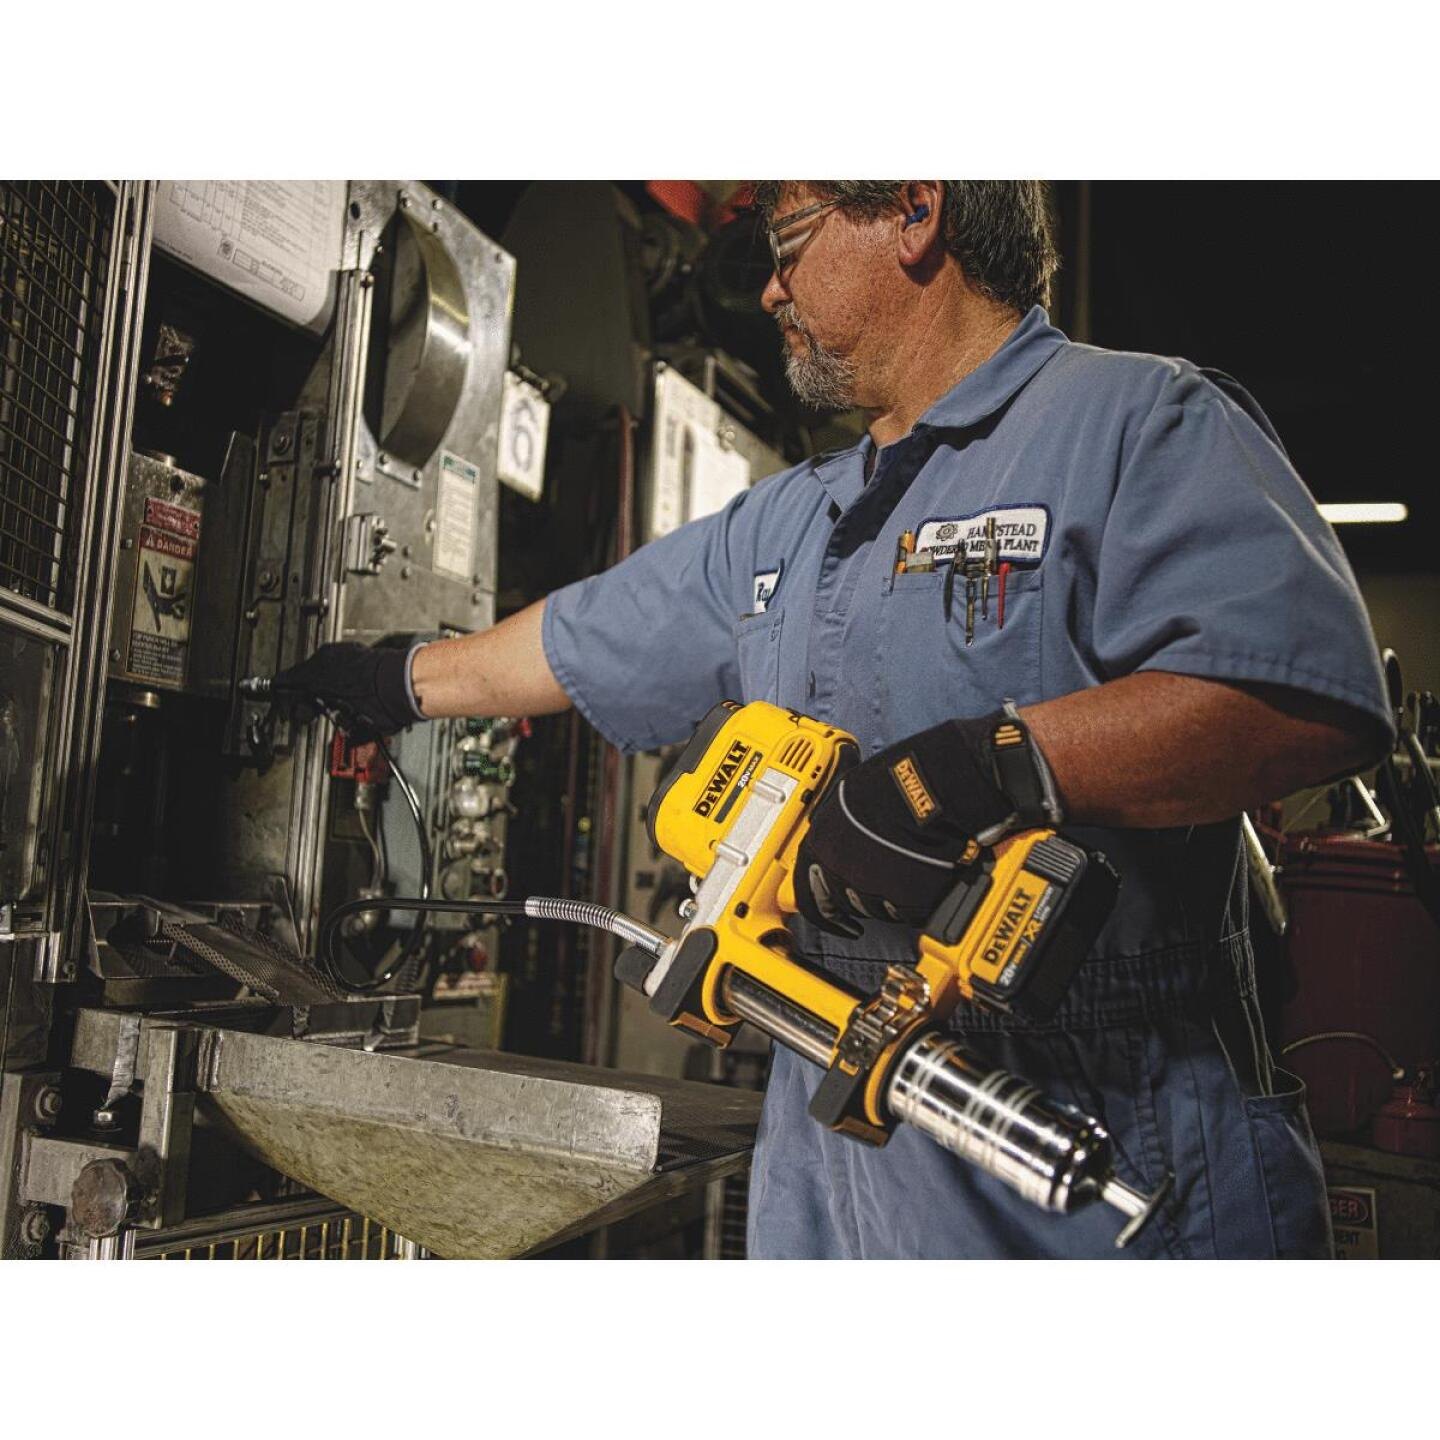 DeWalt 20 Volt MAX Lithium-Ion Cordless Grease Gun Kit Image 3